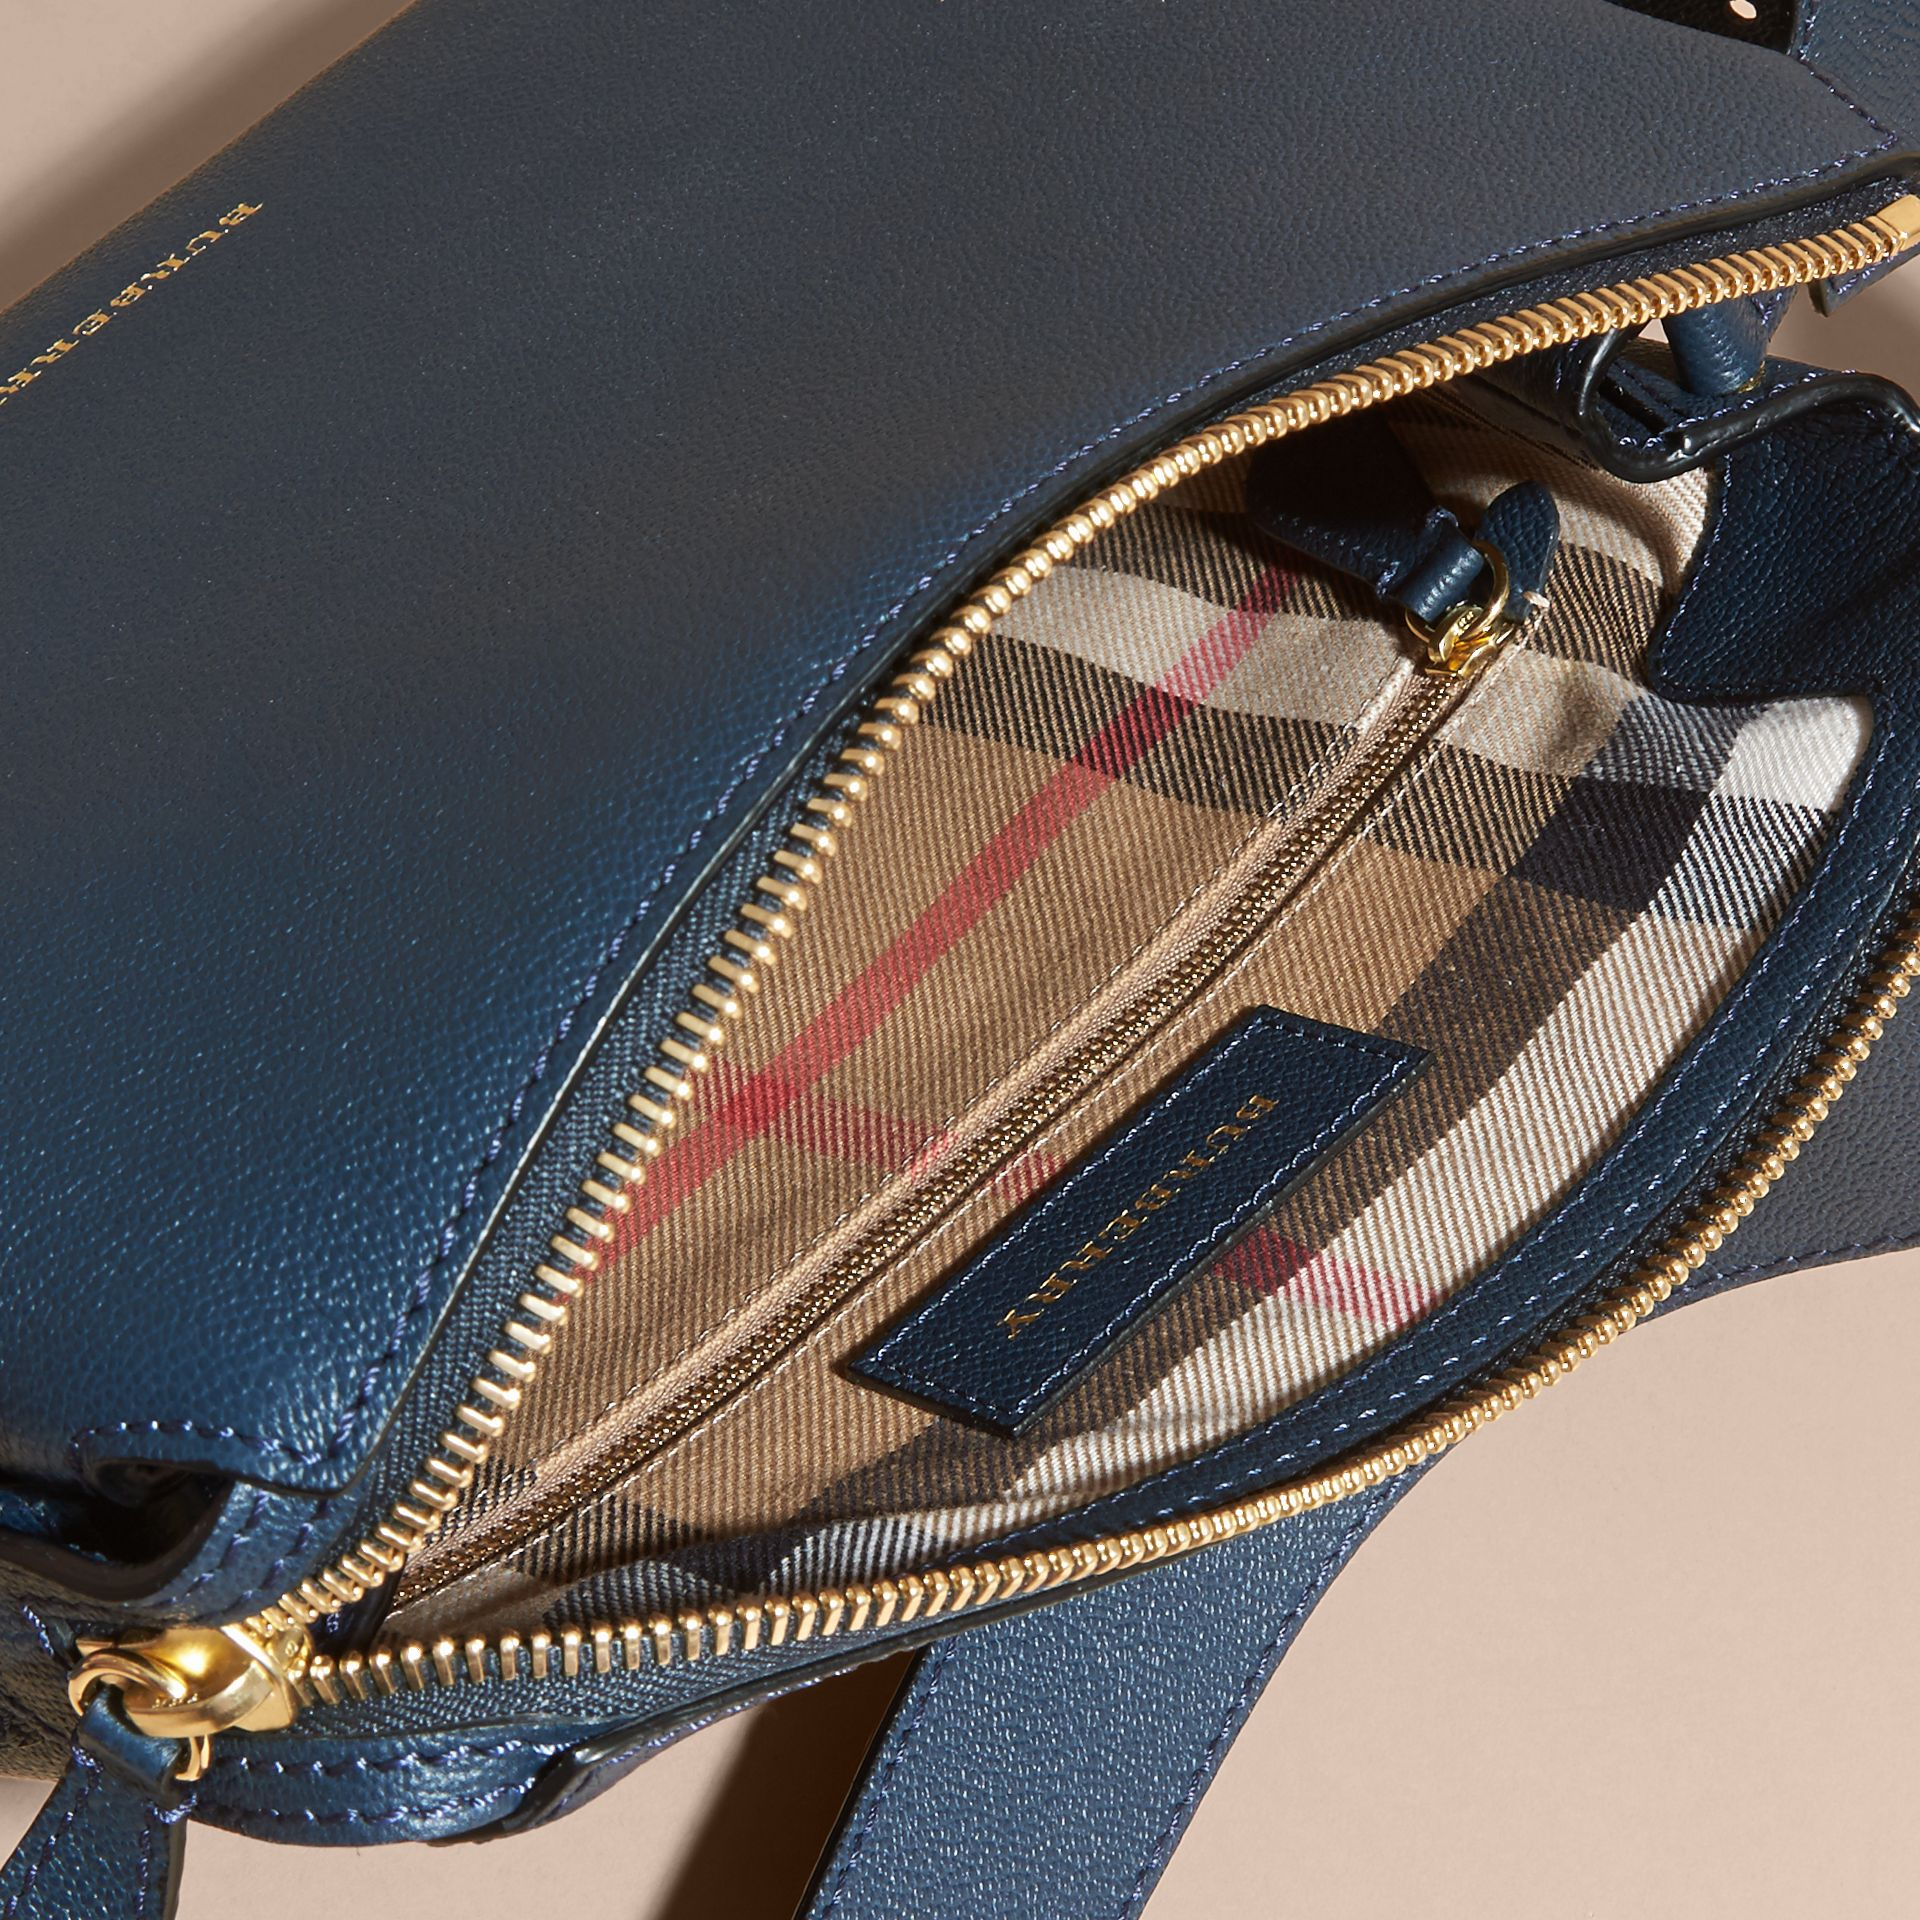 Buckle Detail Leather Crossbody Bag Blue Carbon - gallery image 5